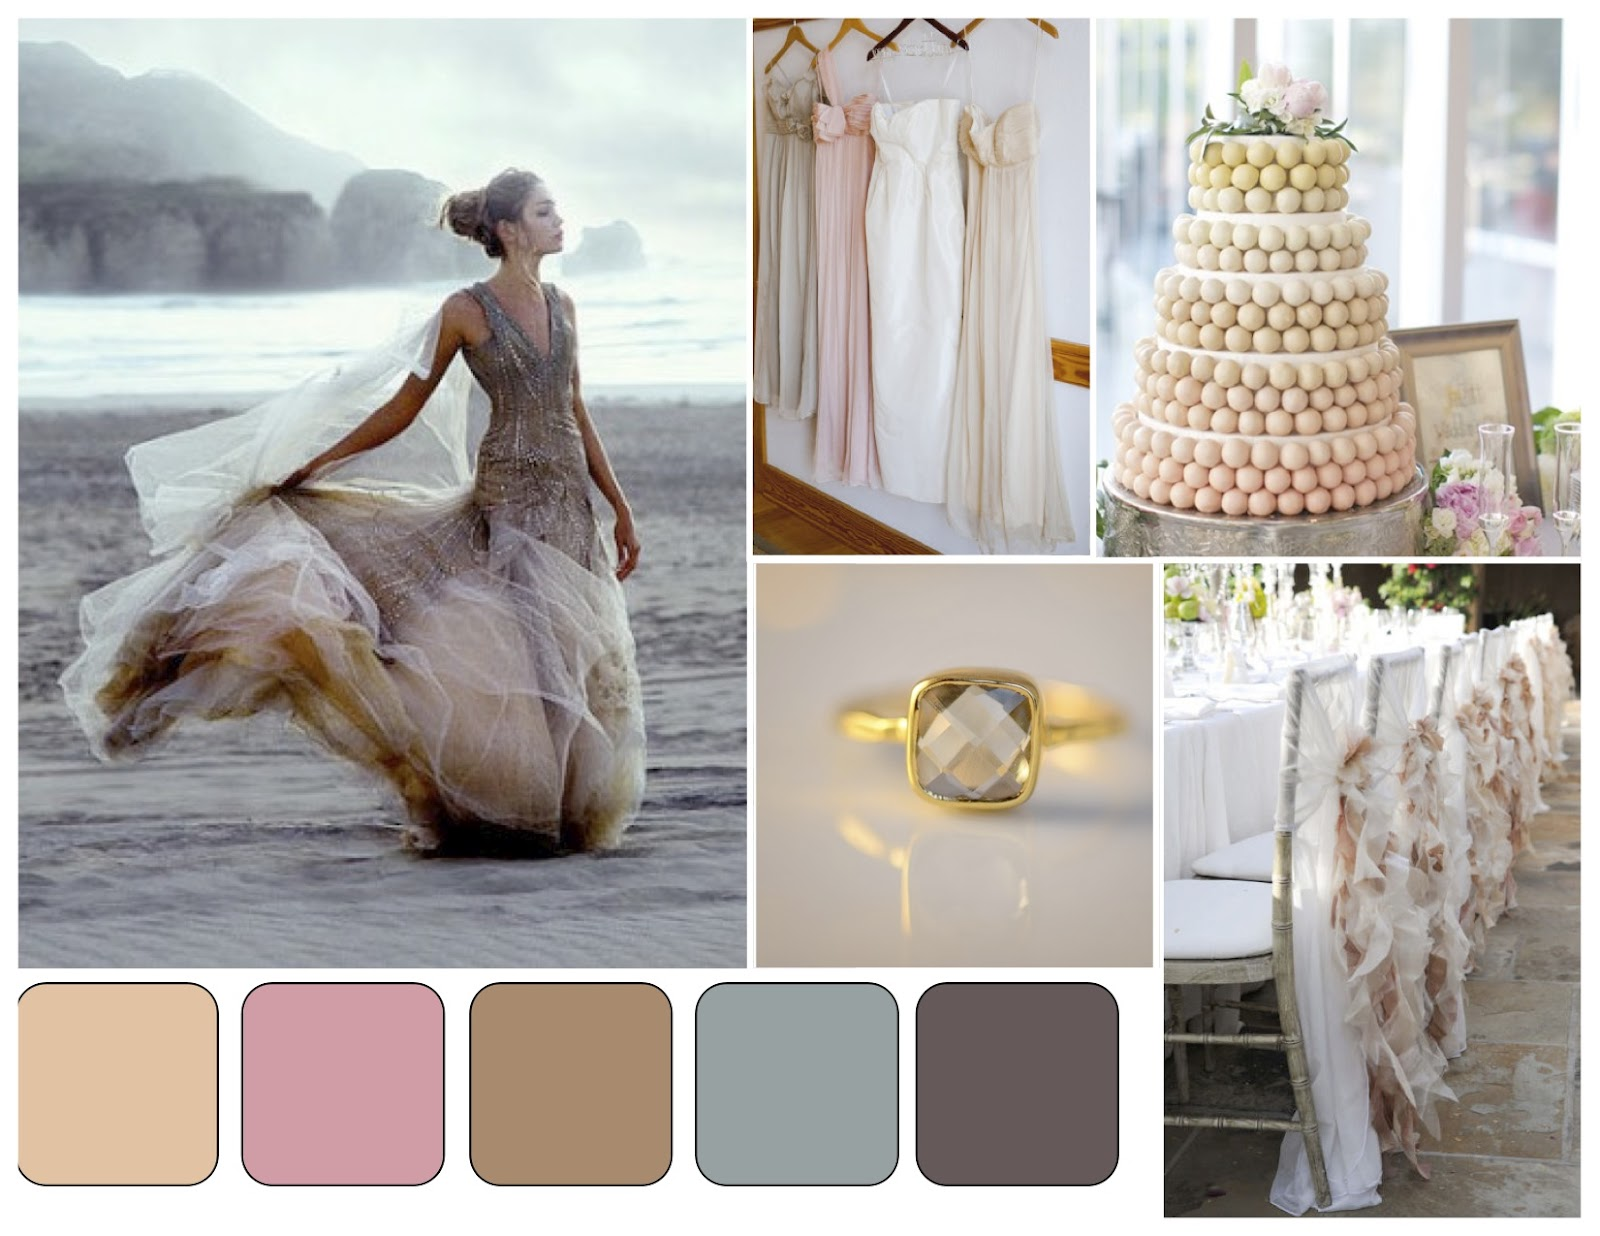 champagne ombre wedding dress ombre wedding dress champagne ombre wedding dress champagne ombre wedding dress